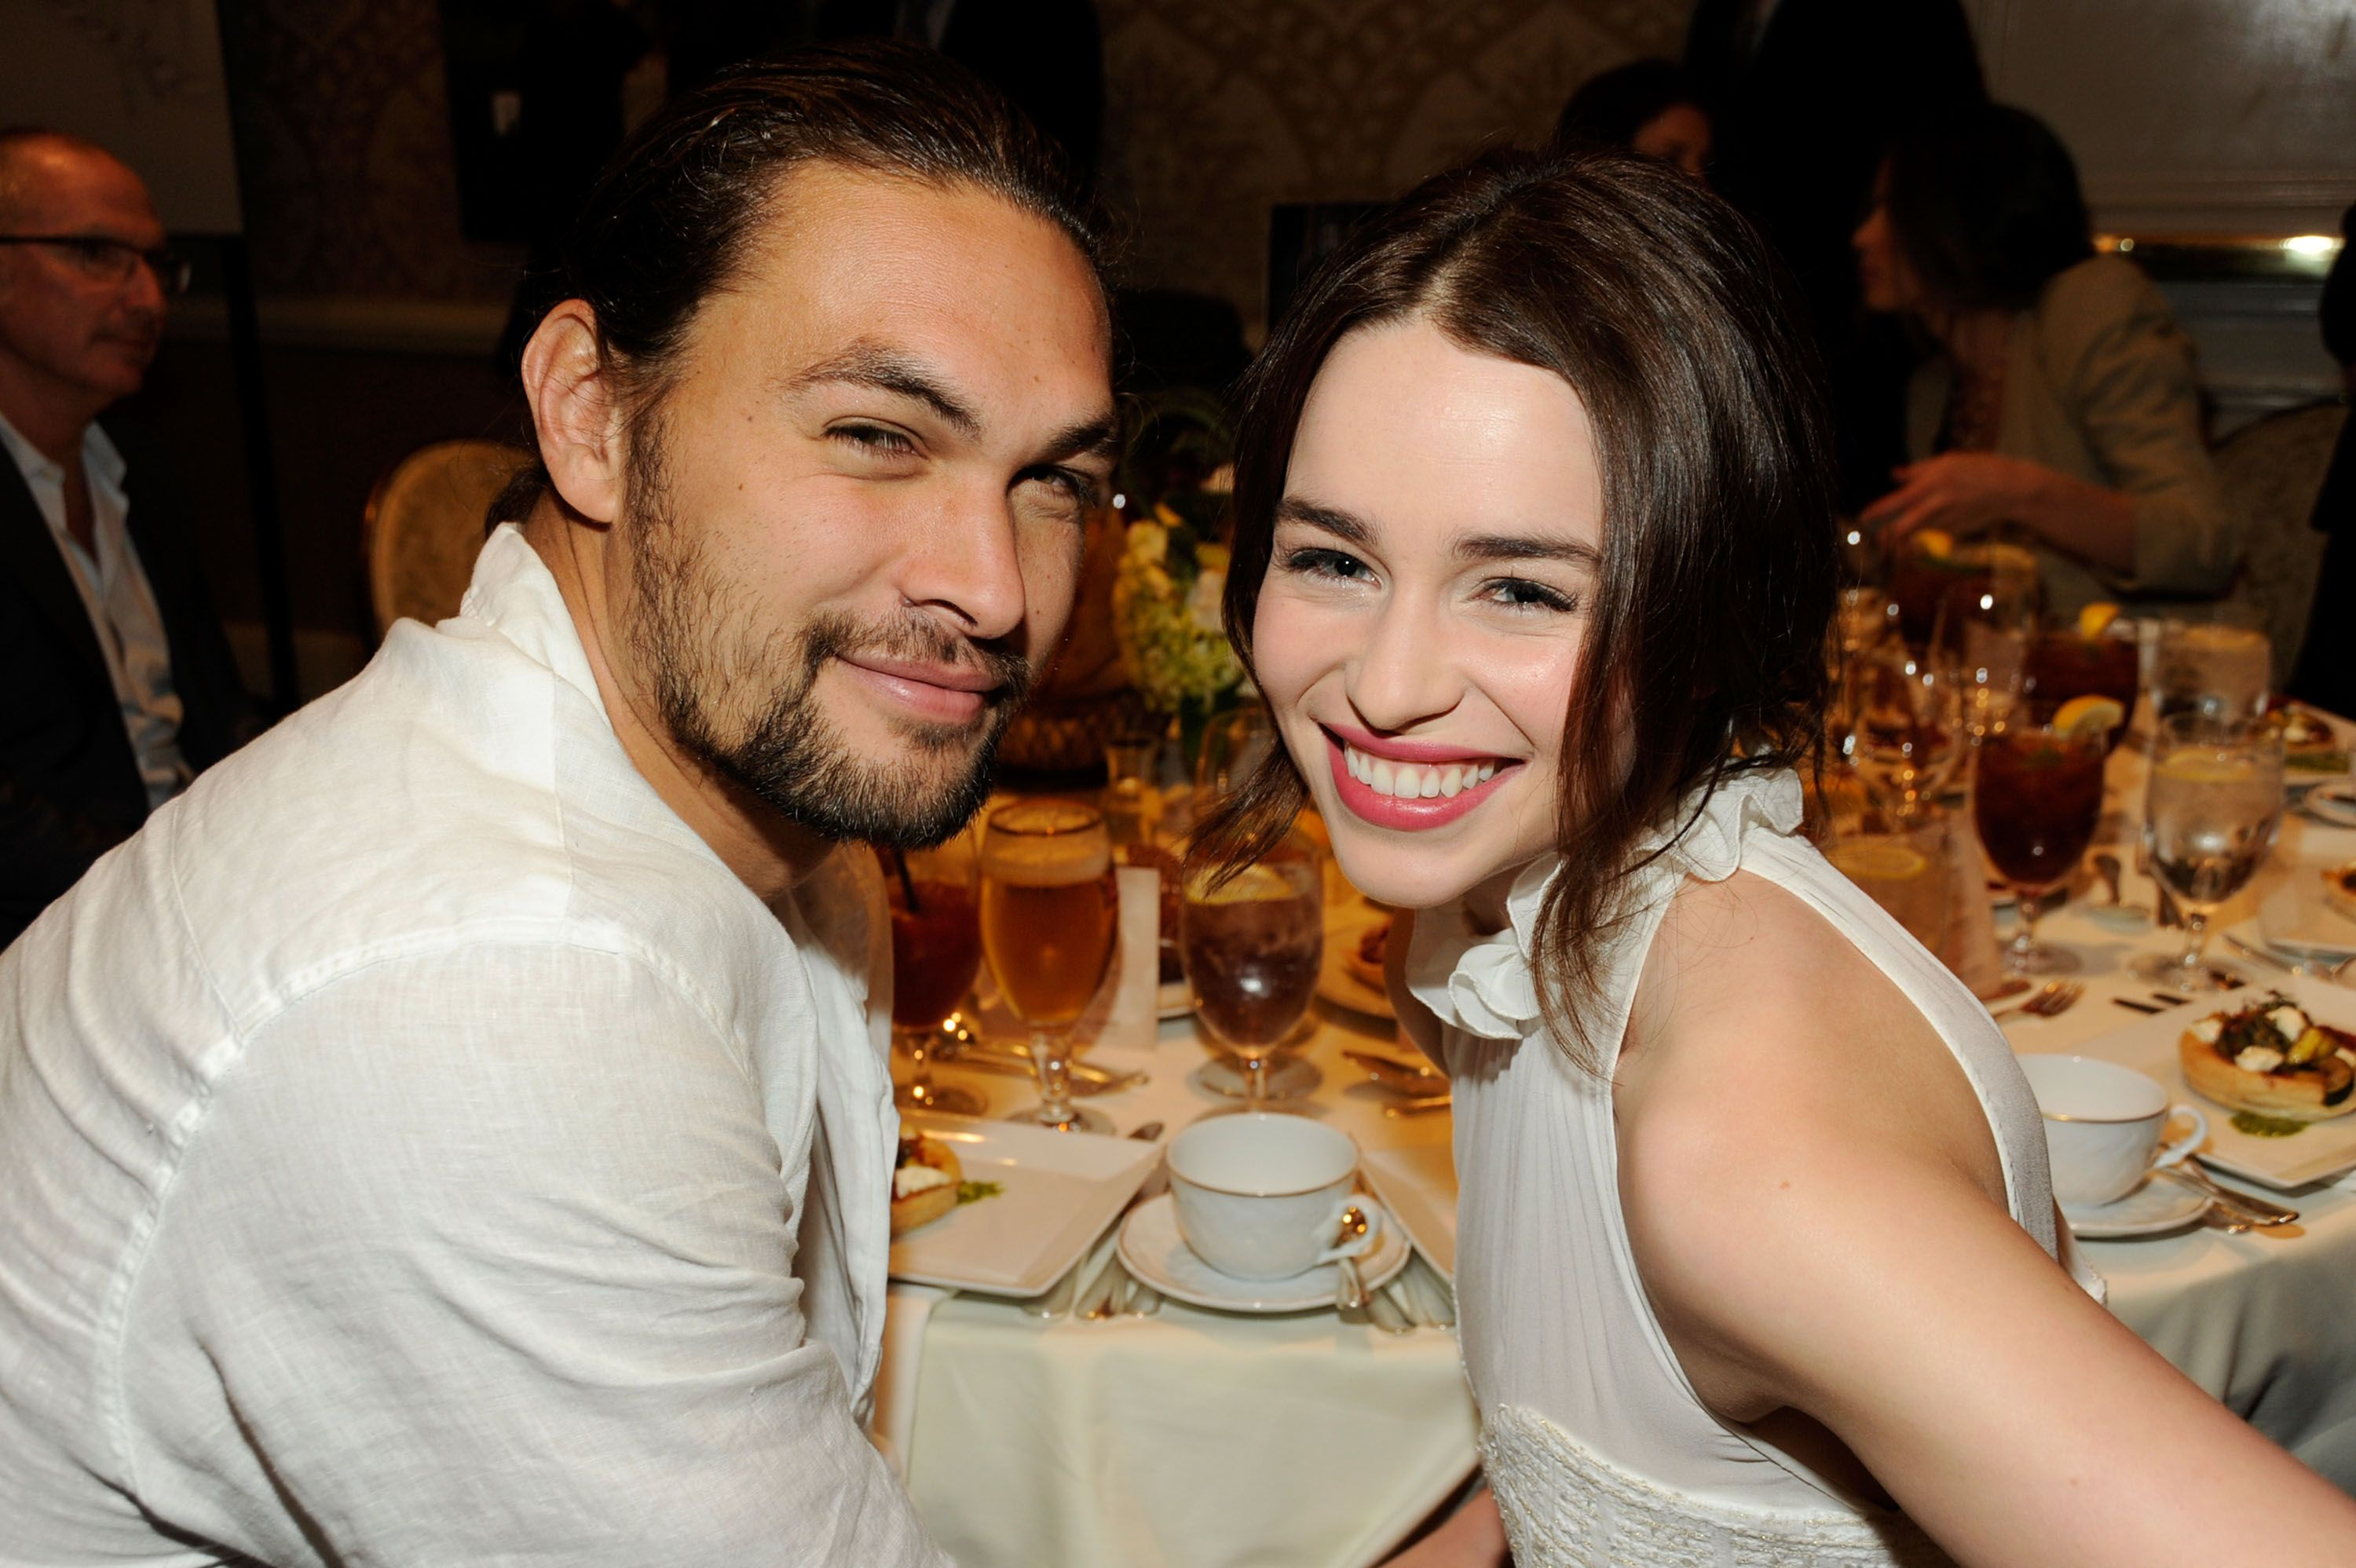 Jason Momoa Left the Most Khal Drogo Comment on Emilia Clarke's Instagram About Game of Thrones' Finale